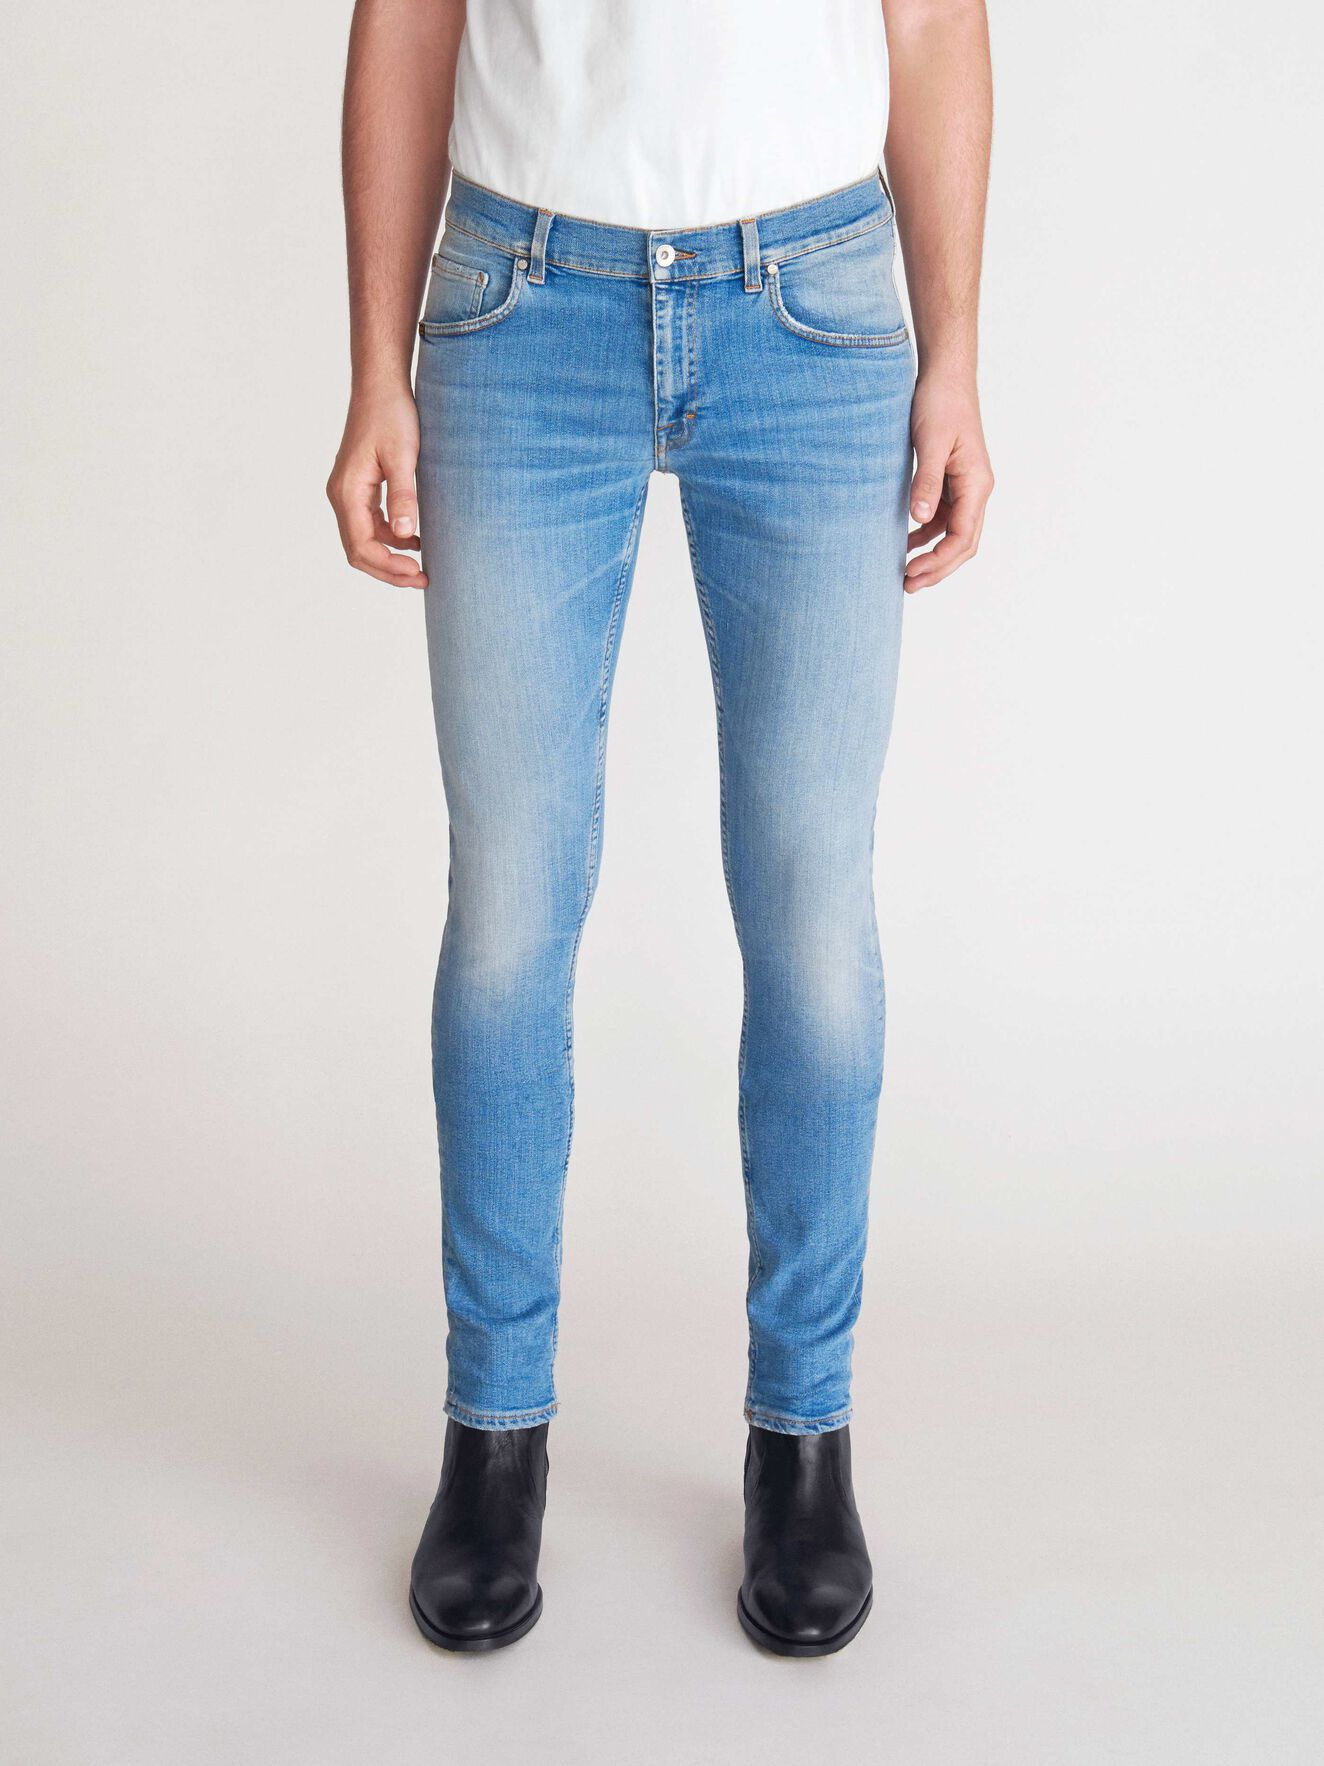 16f74e92f6c Jeans - Find quality designer jeans at discounted prices online at ...